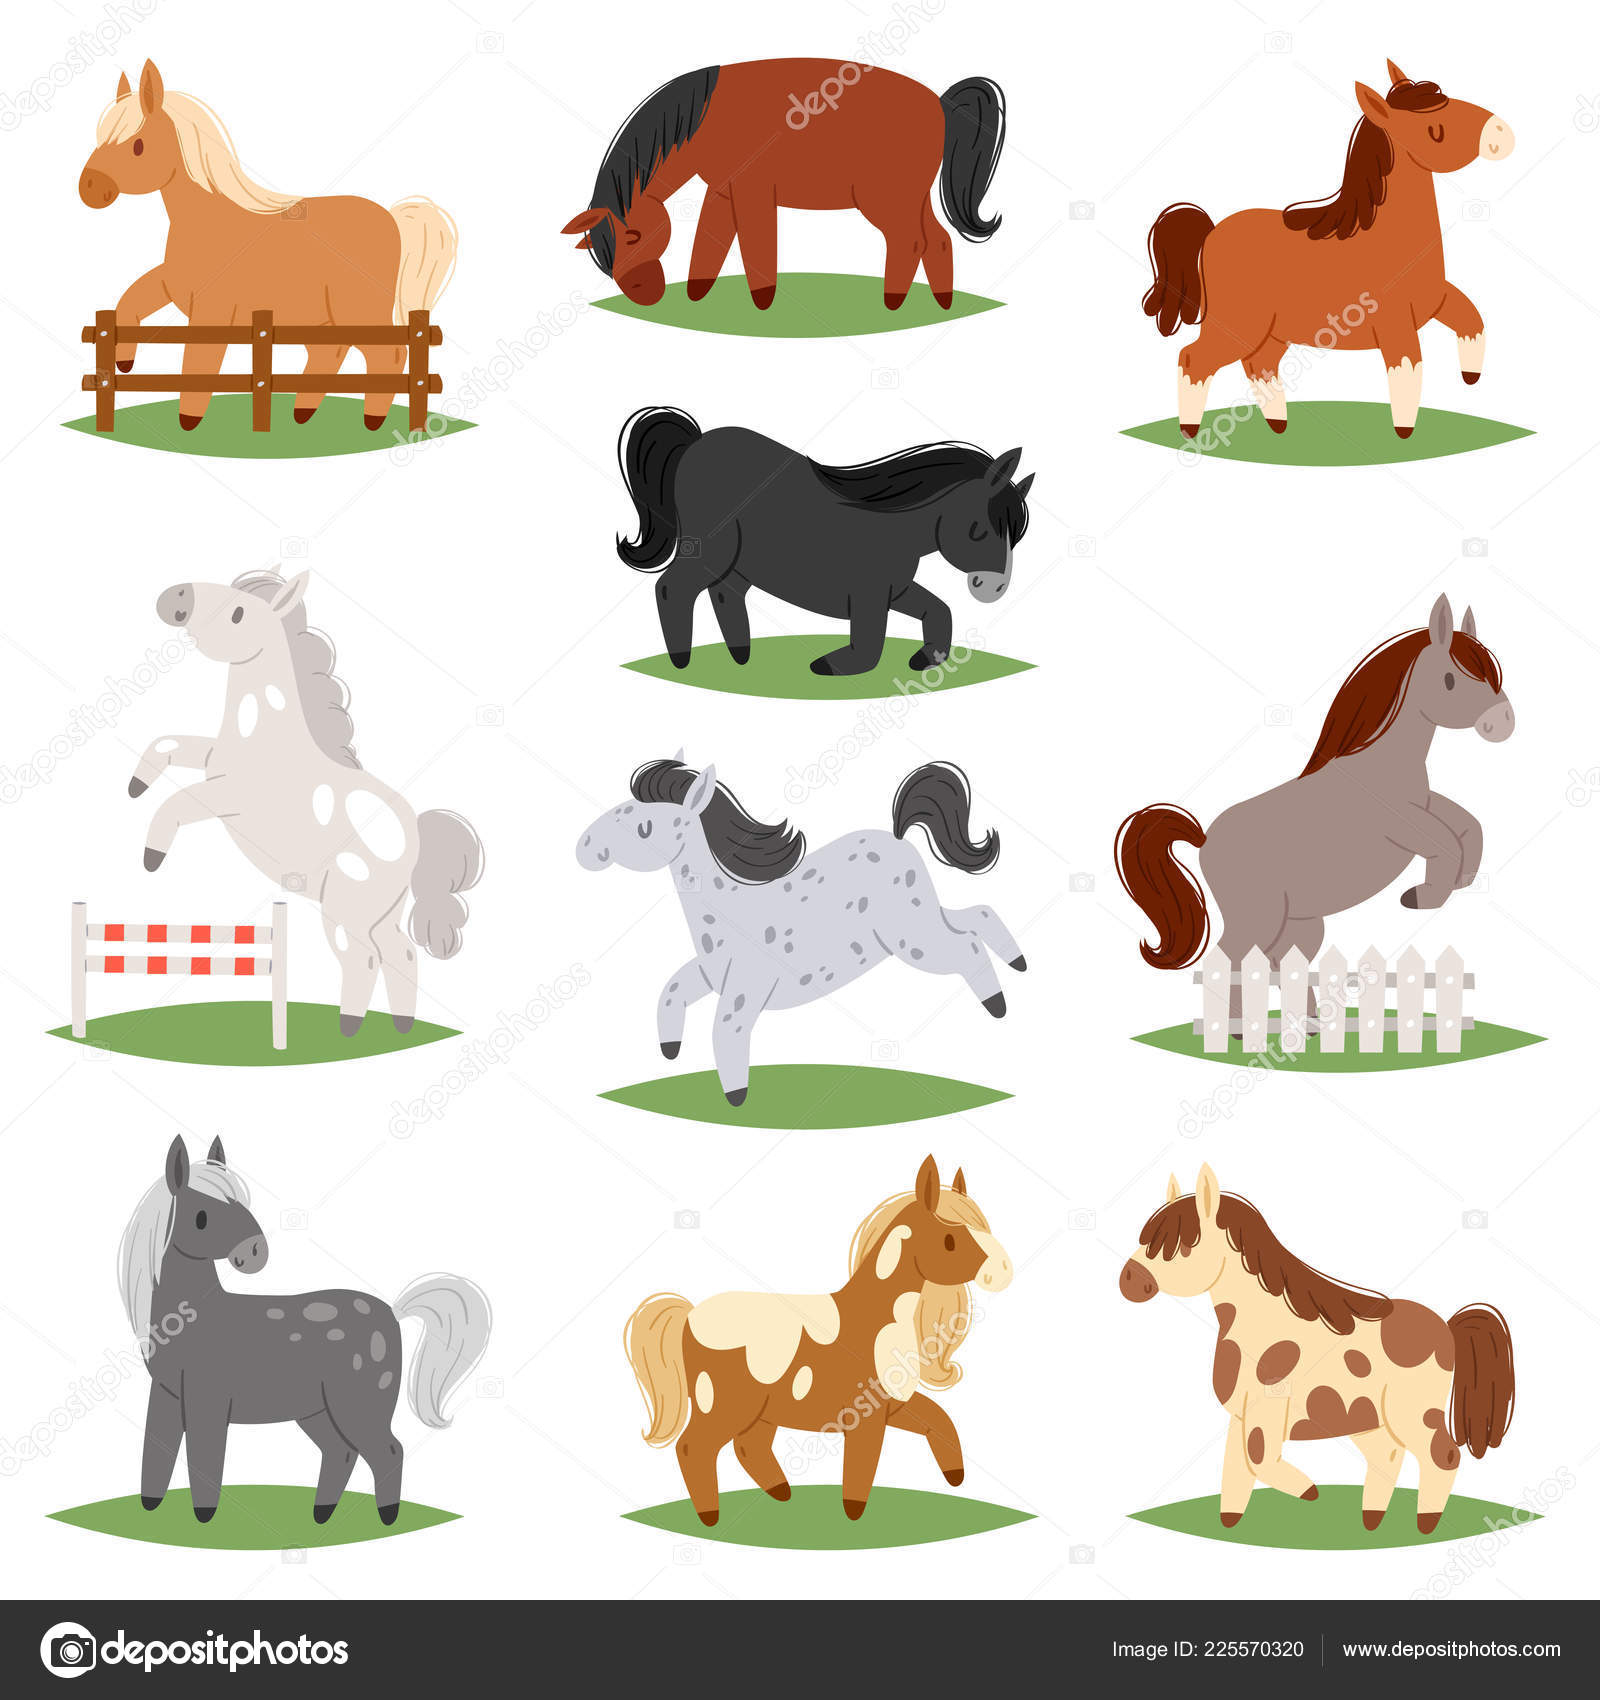 Cartoon Horse Vector Cute Animal Of Horse Breeding Or Kids Equestrian And Horsey Or Equine Stallion Illustration Childly Animalistic Horsy Set Of Little Pony Character Isolated On White Background Stock Vector C